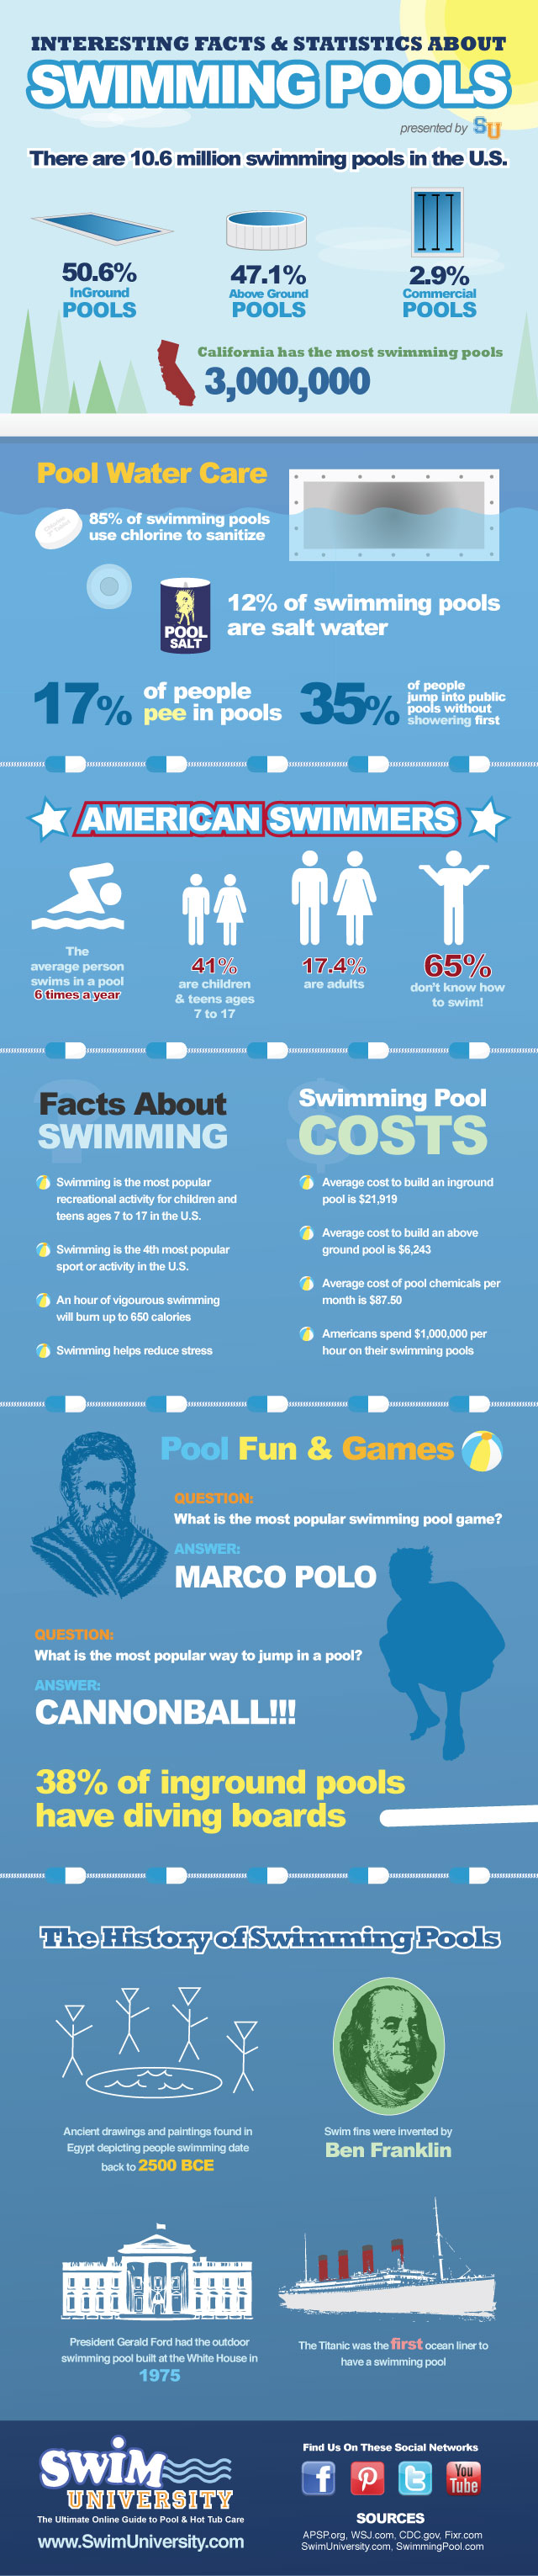 Interesting Facts and Statistics About Swimming Pools